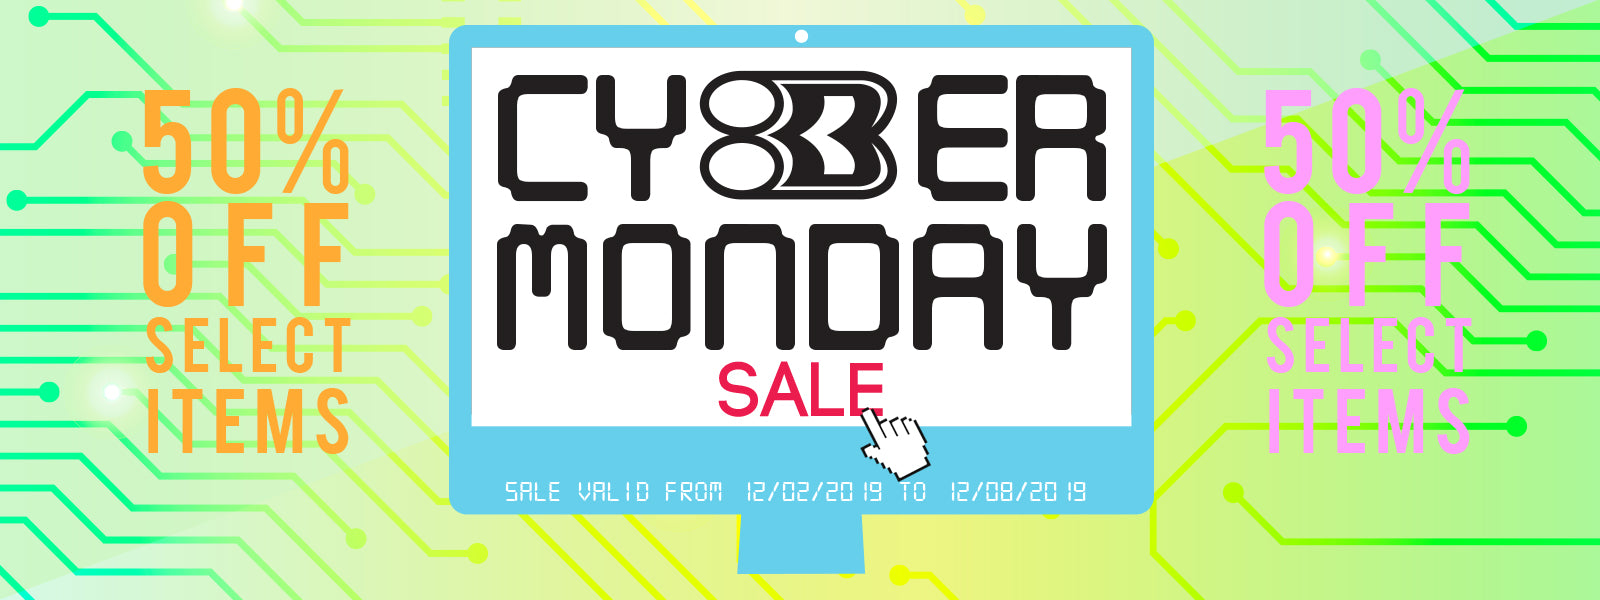 black friday cyber monday deal macys adidas ebates cash promotion holiday sale christmas gifts